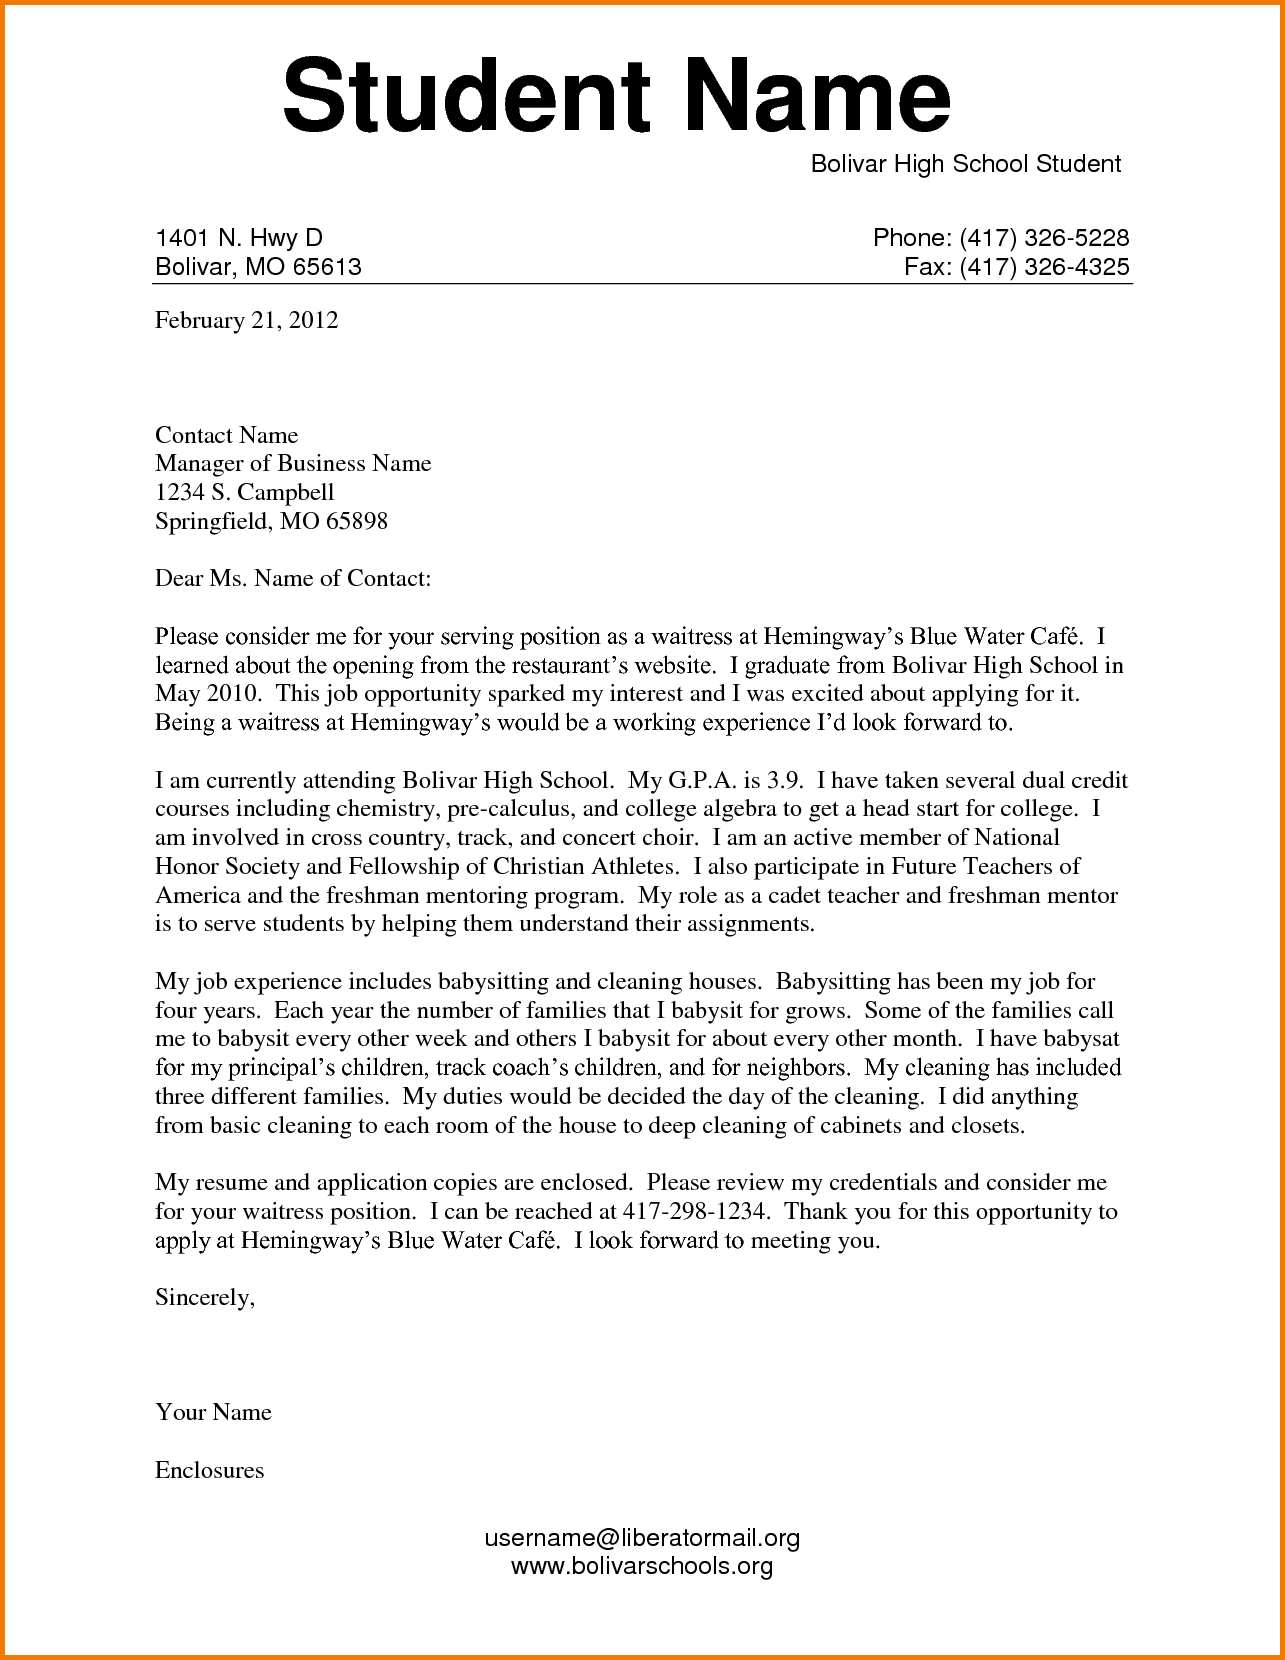 006 Scholarships Without Essays Essay Example Formal Letter Format For School Students Financial Statement Form Stunning Requirements No Required In Texas Full